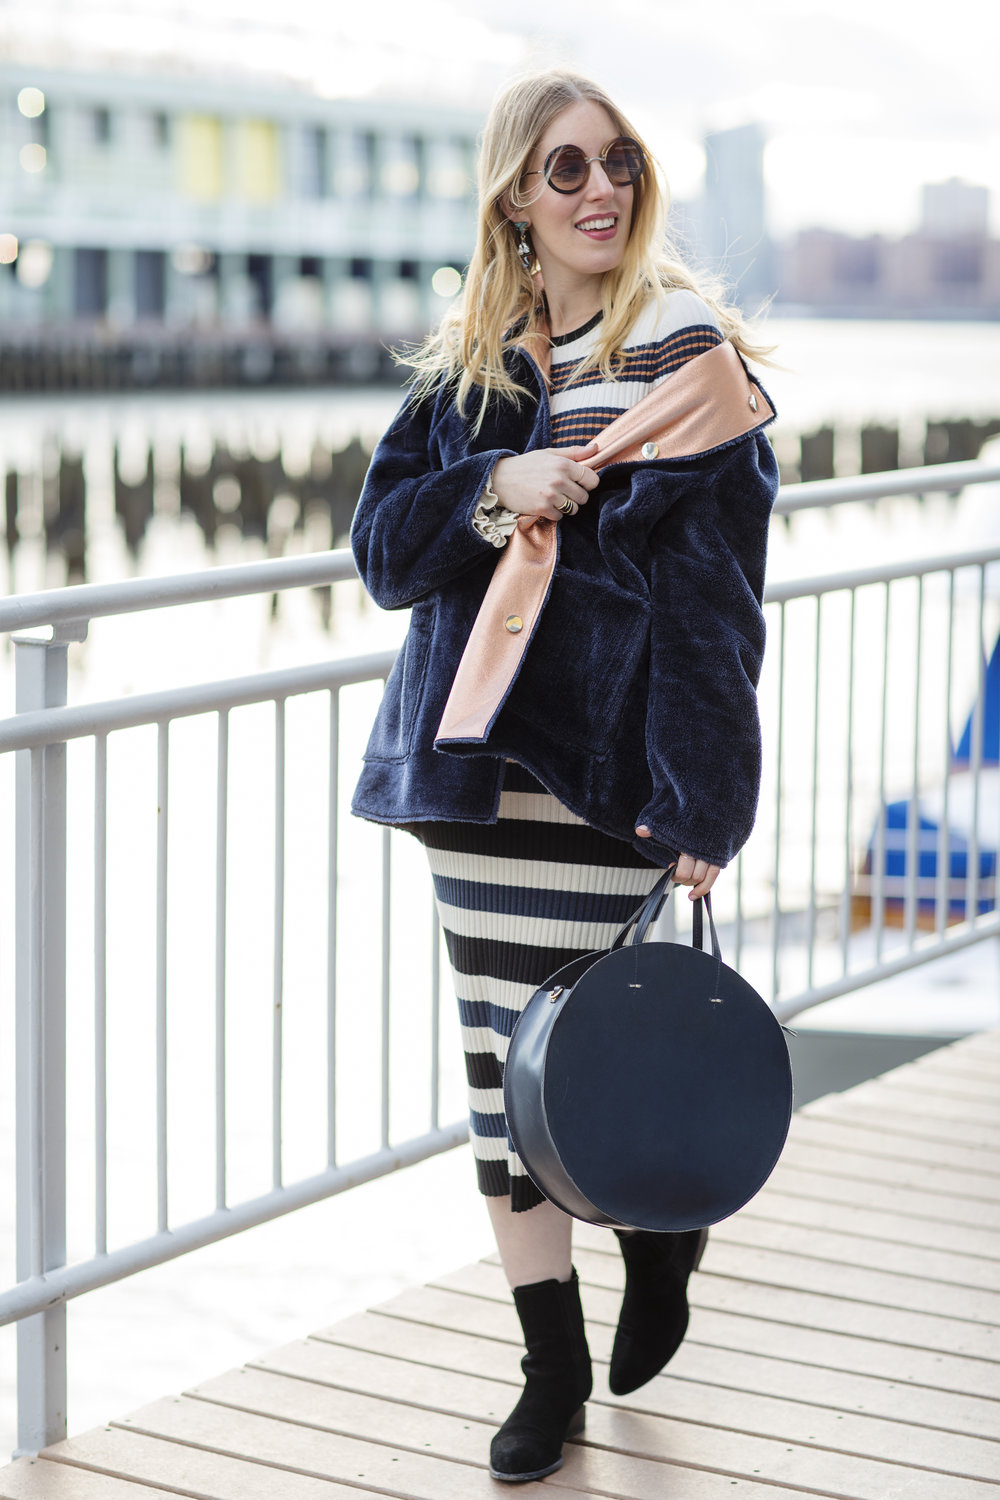 Nurtured 9's resident fashion expert Liz Teich is wearing a non-maternity Opening Ceremony look from Rent The Runway. Photo Credit:  Rima Brindamour